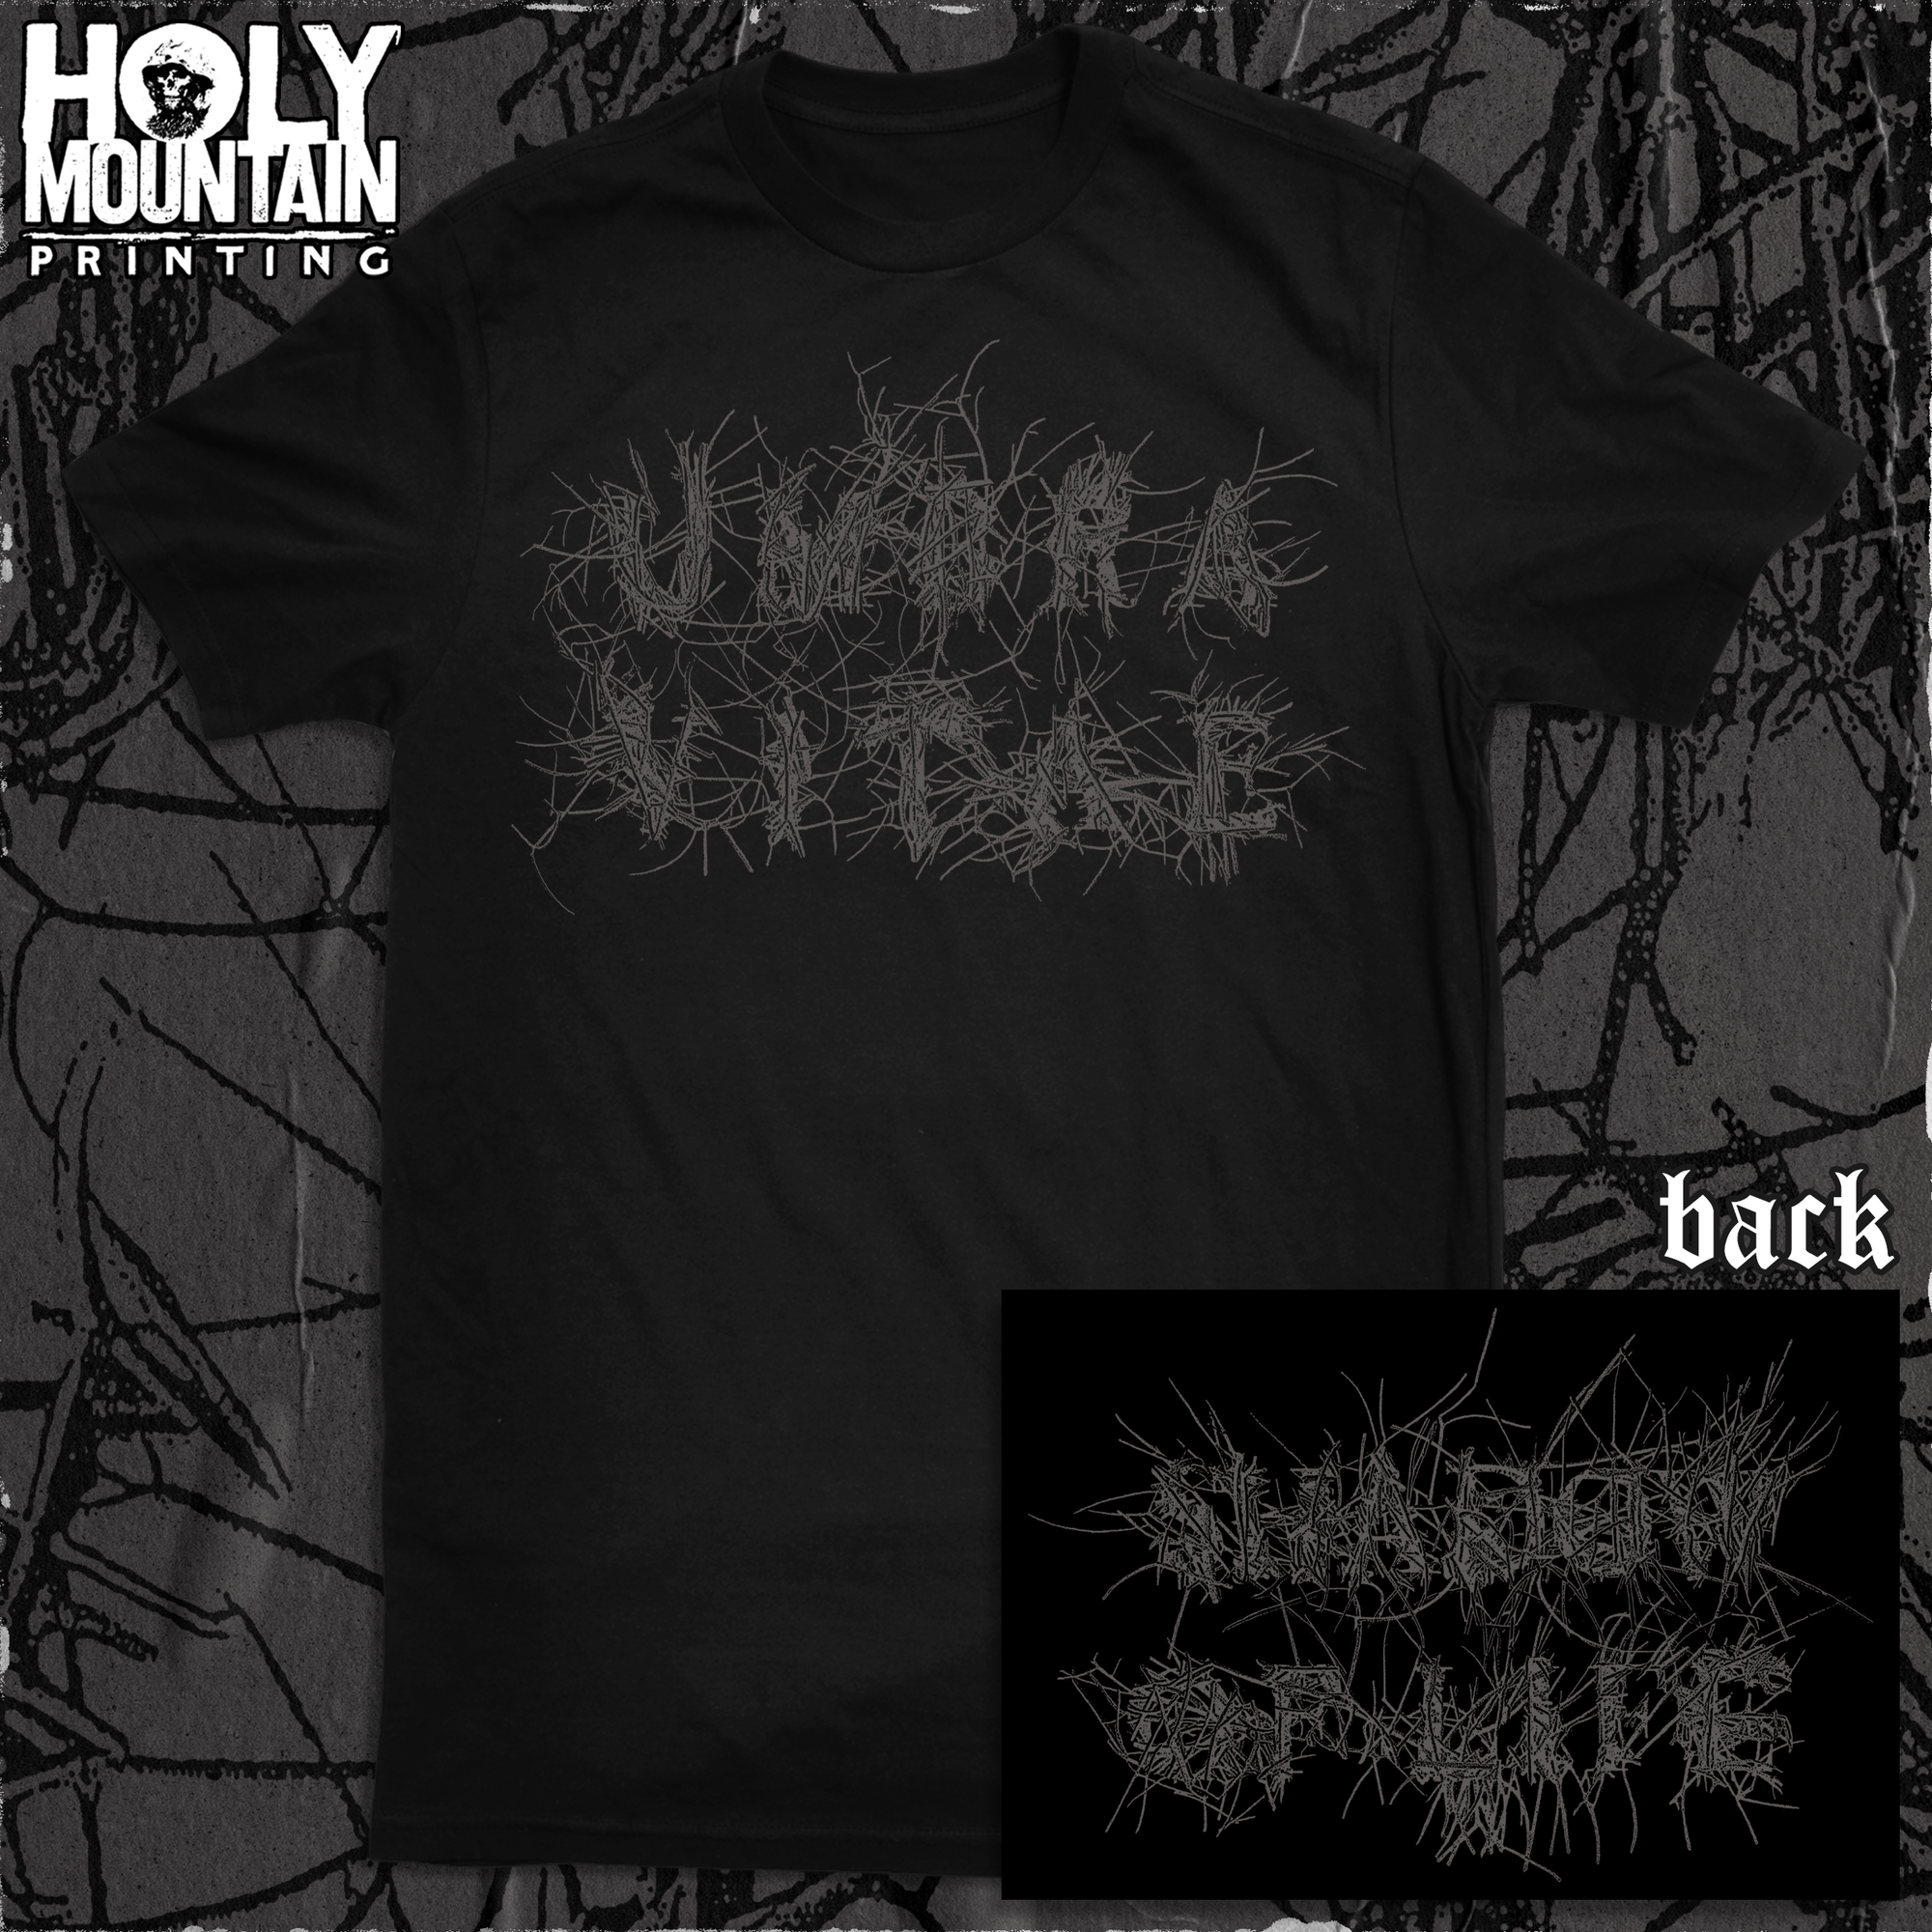 "UMBRA VITAE ""SHADOW OF LIFE"" BLACK SHIRT"